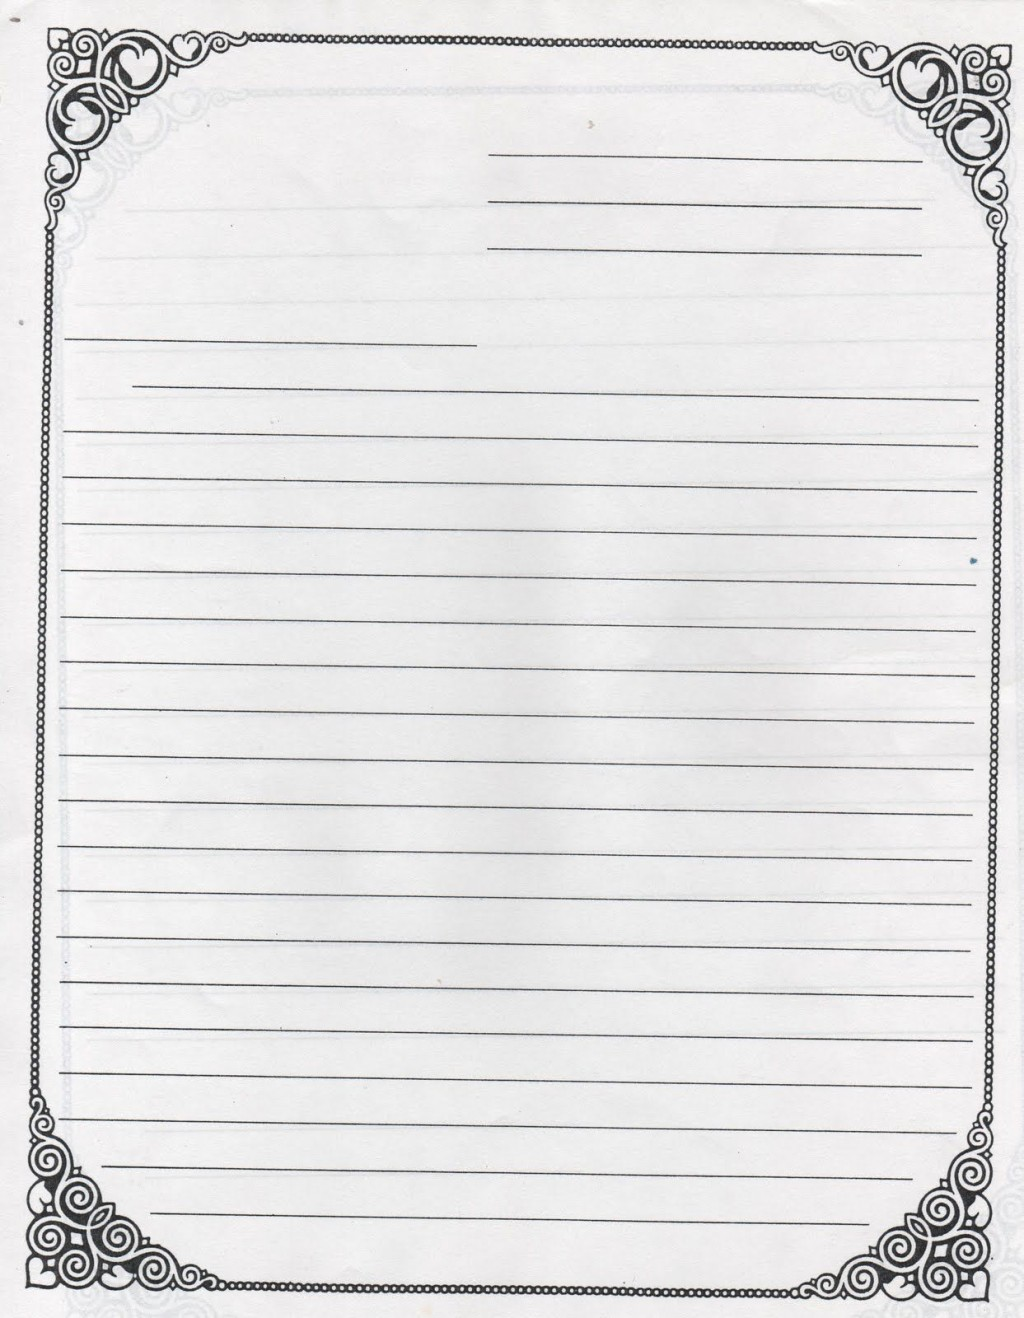 006 Fascinating Free Letter Writing Template For Student Image  StudentsLarge